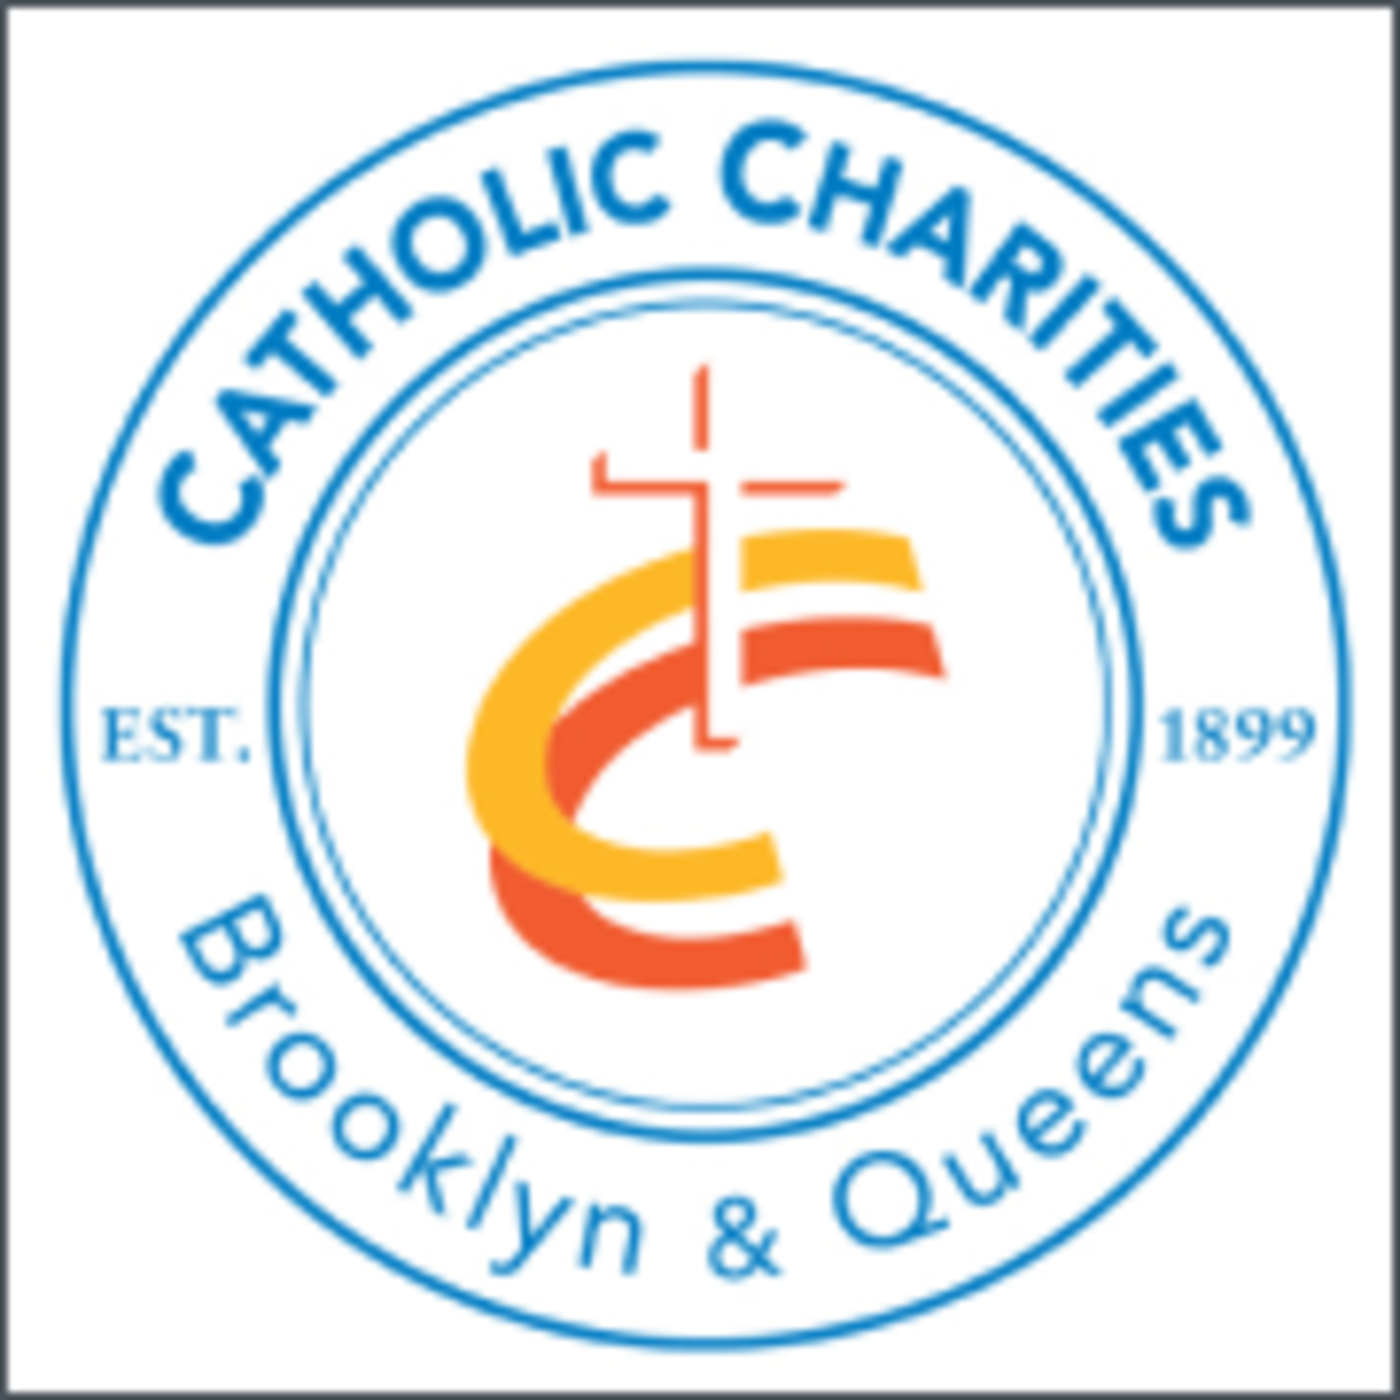 Catholic Charities of Brooklyn & Queens